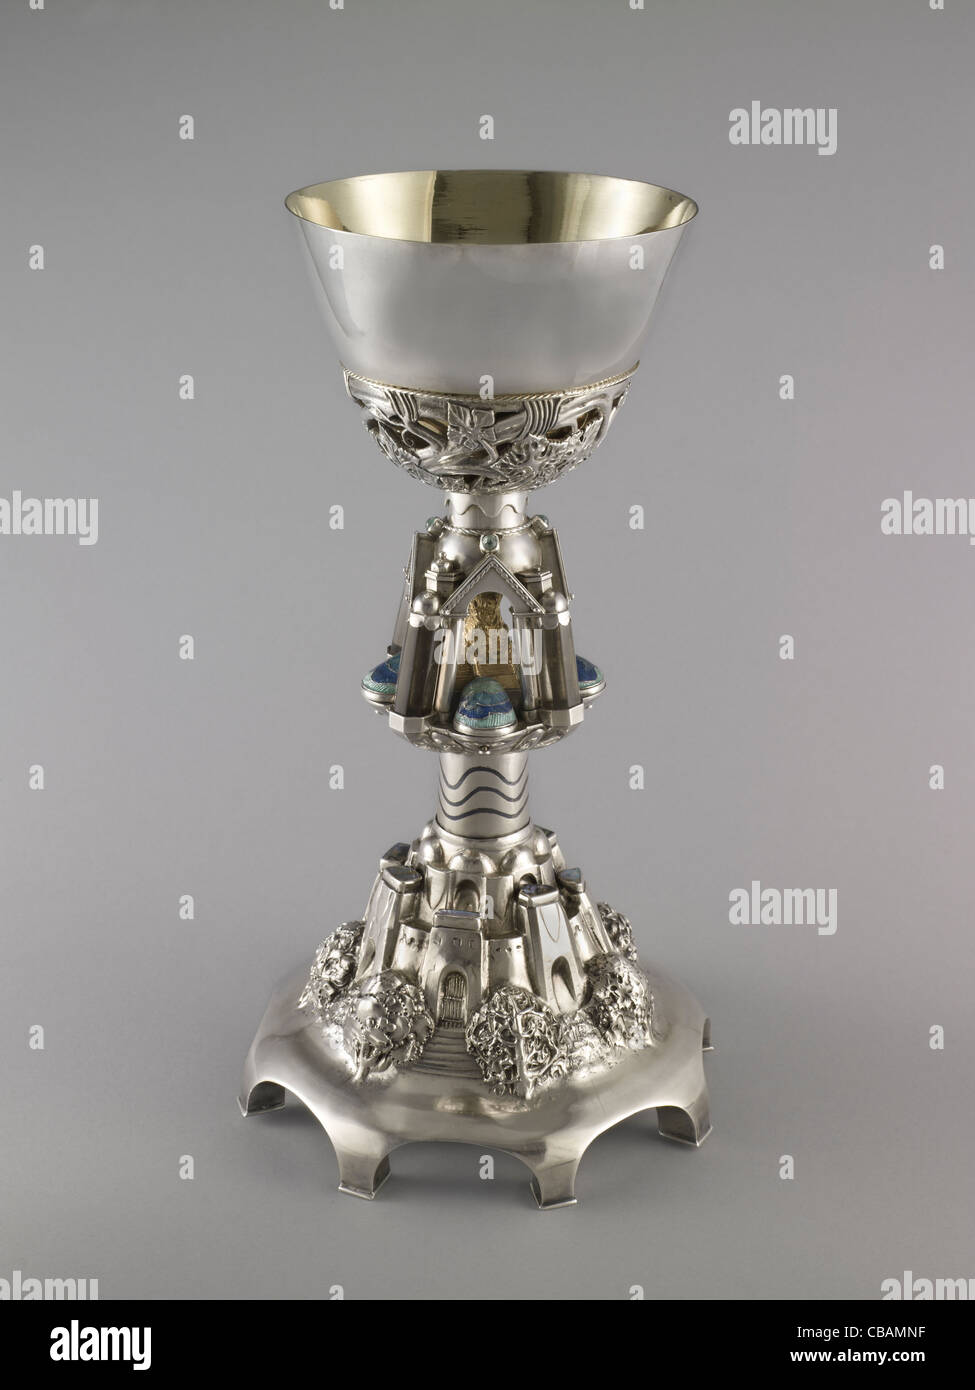 Silver chalice dedicated to Canon Douglas Tinling, Arts & Crafts, designed by Henry Wilson, 1900. Gloucester - Stock Image